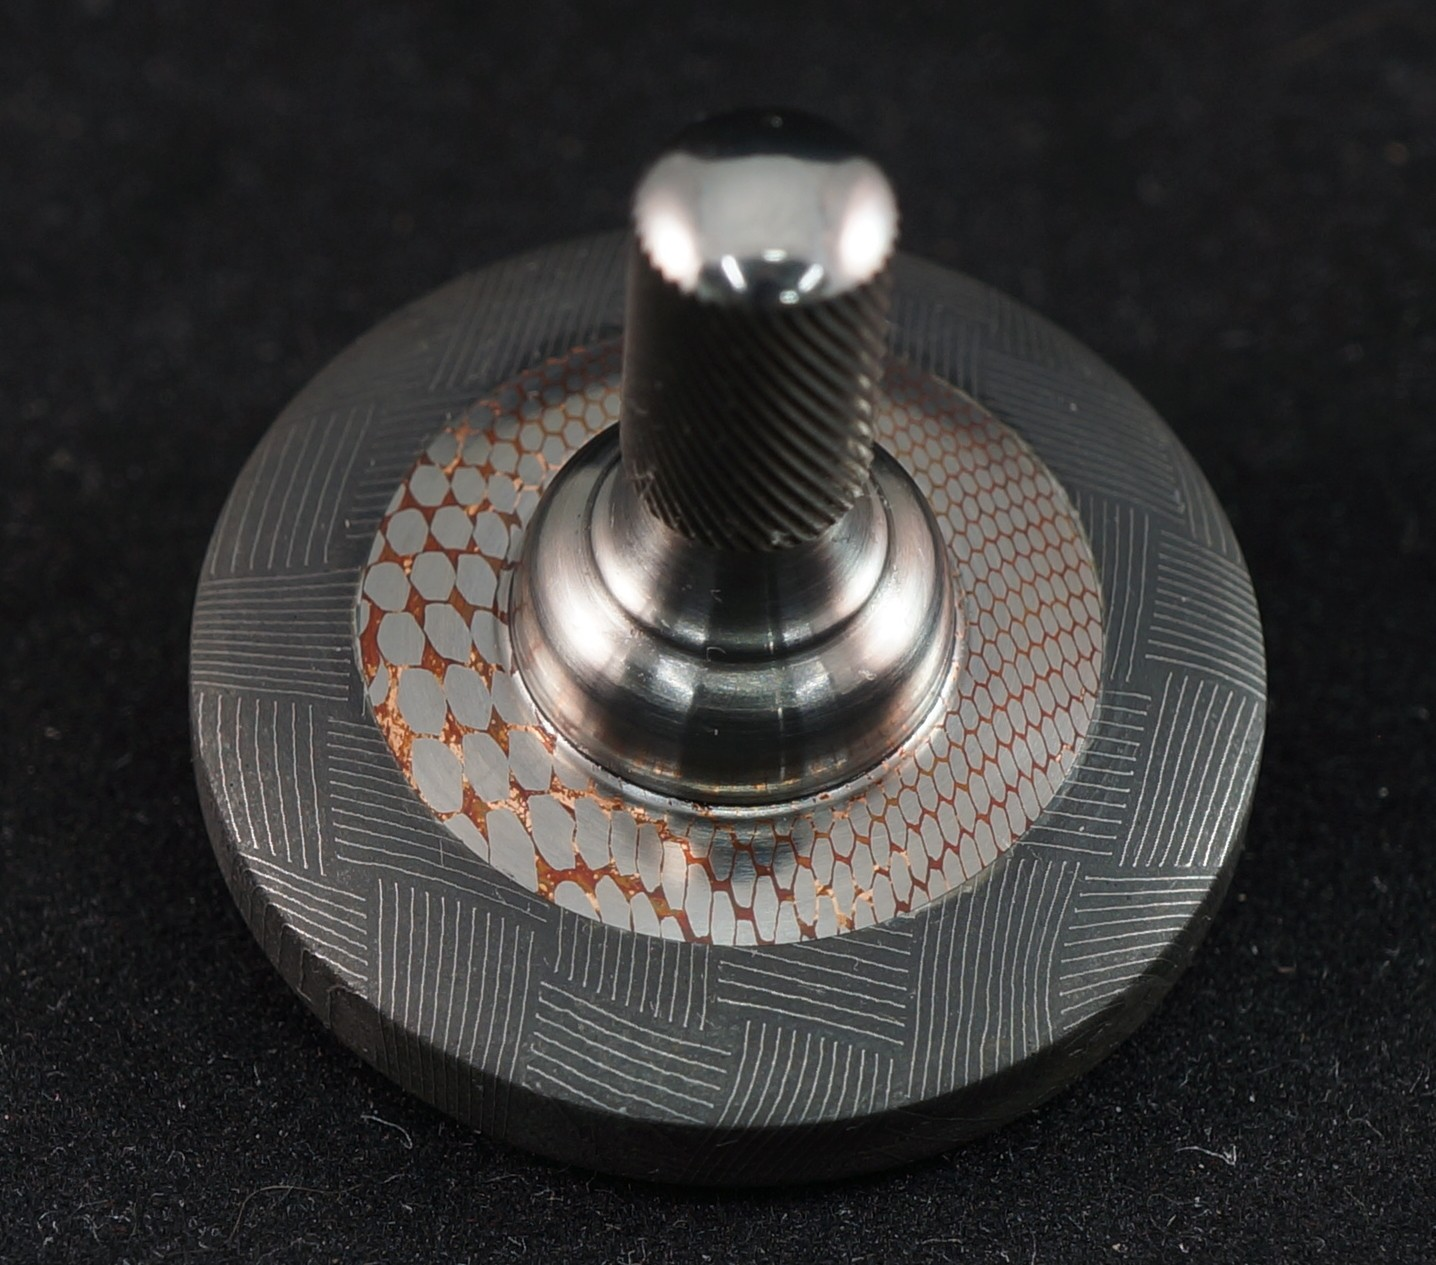 1.22 Vegas Forge Basketweave, supeconductor and Titanium picture 2